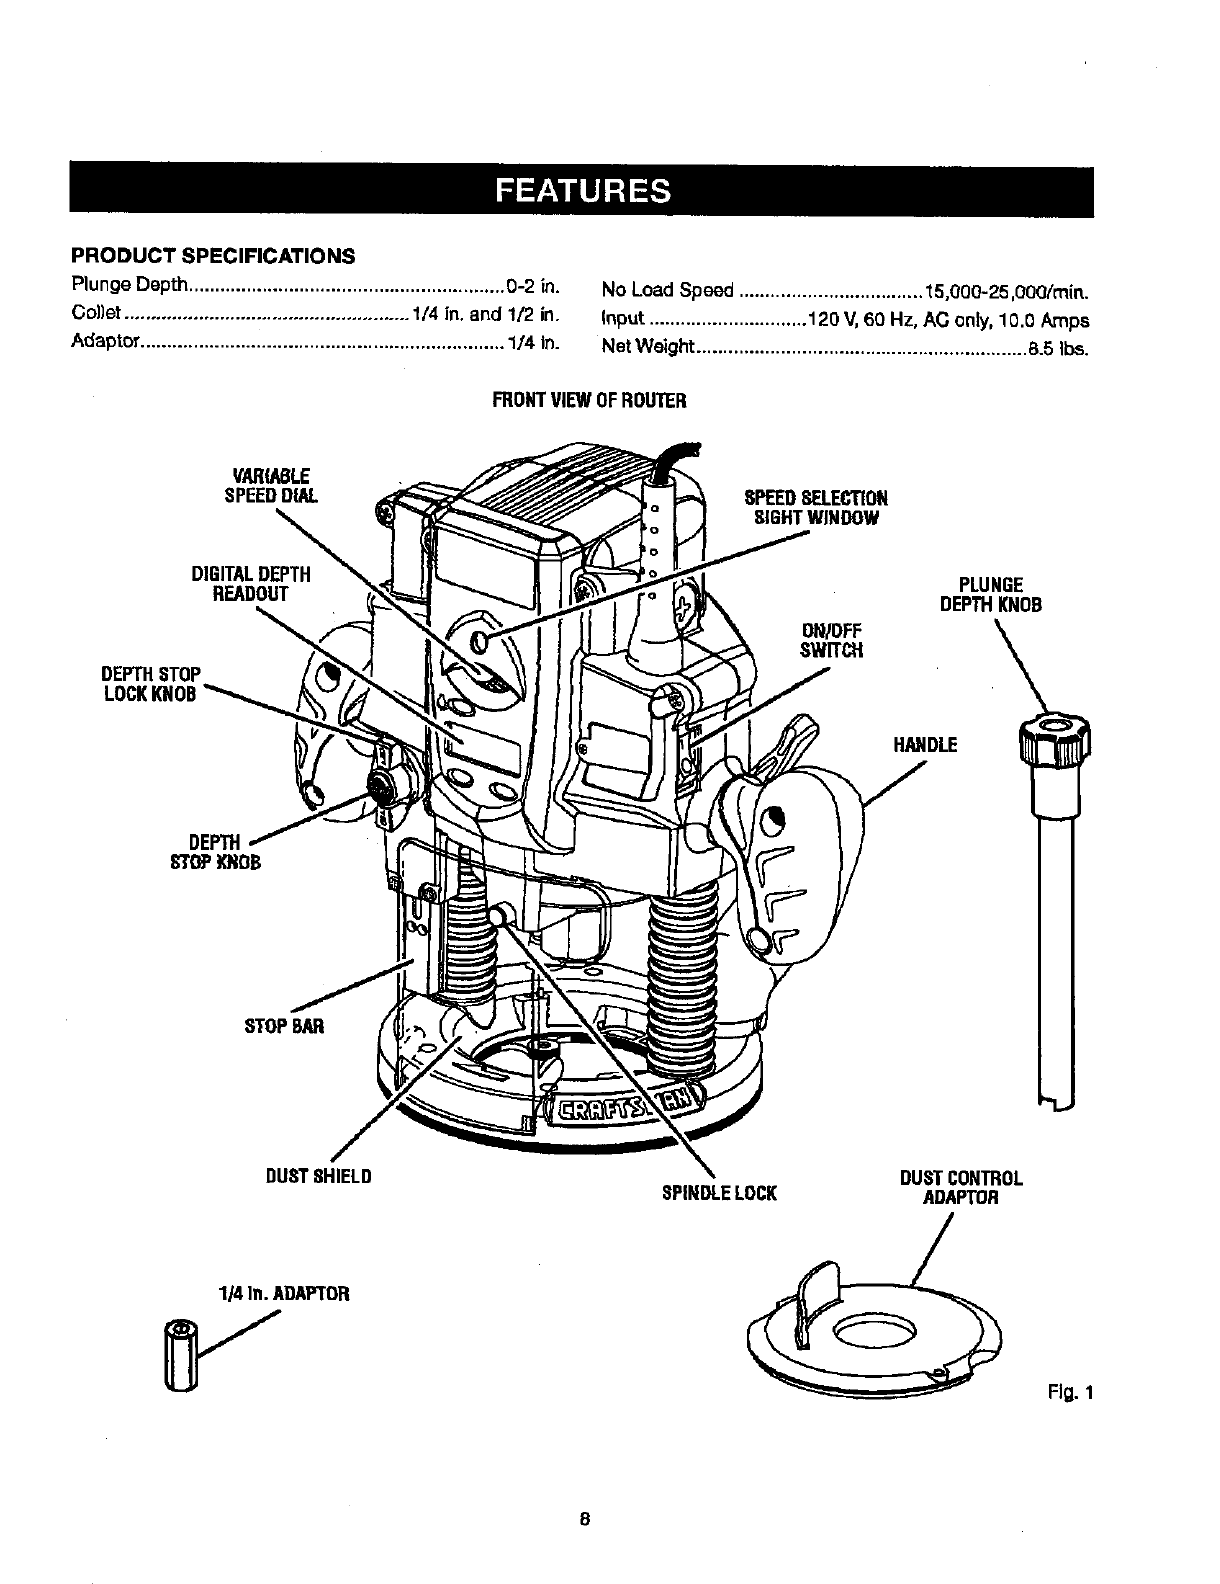 Craftsman User Manual Router Manuals And Guides